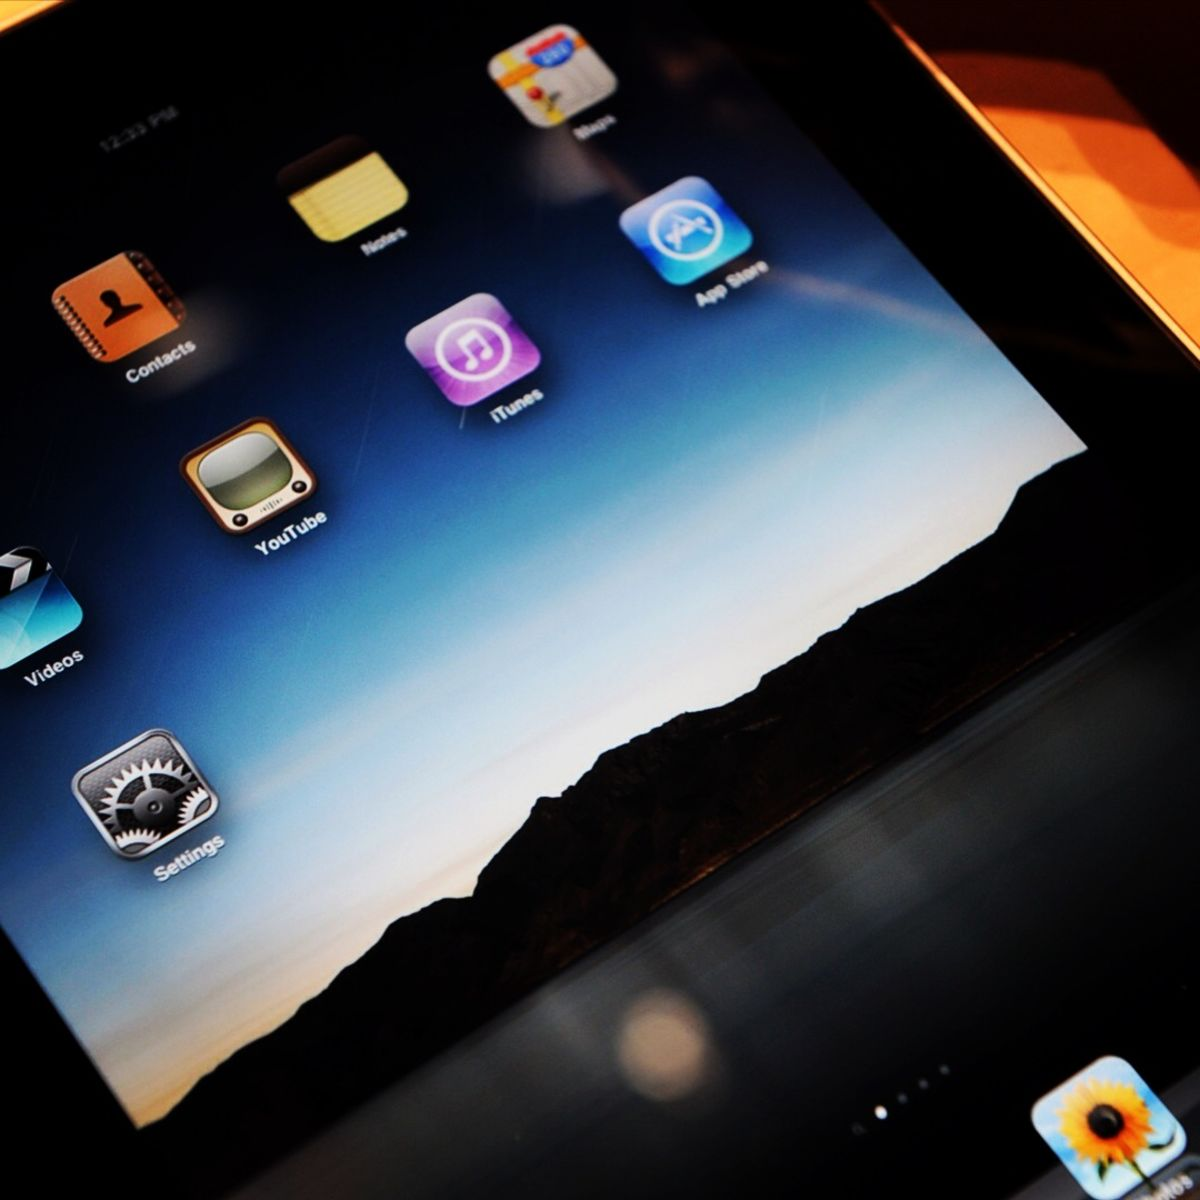 List of Educational iPad Apps To Start With